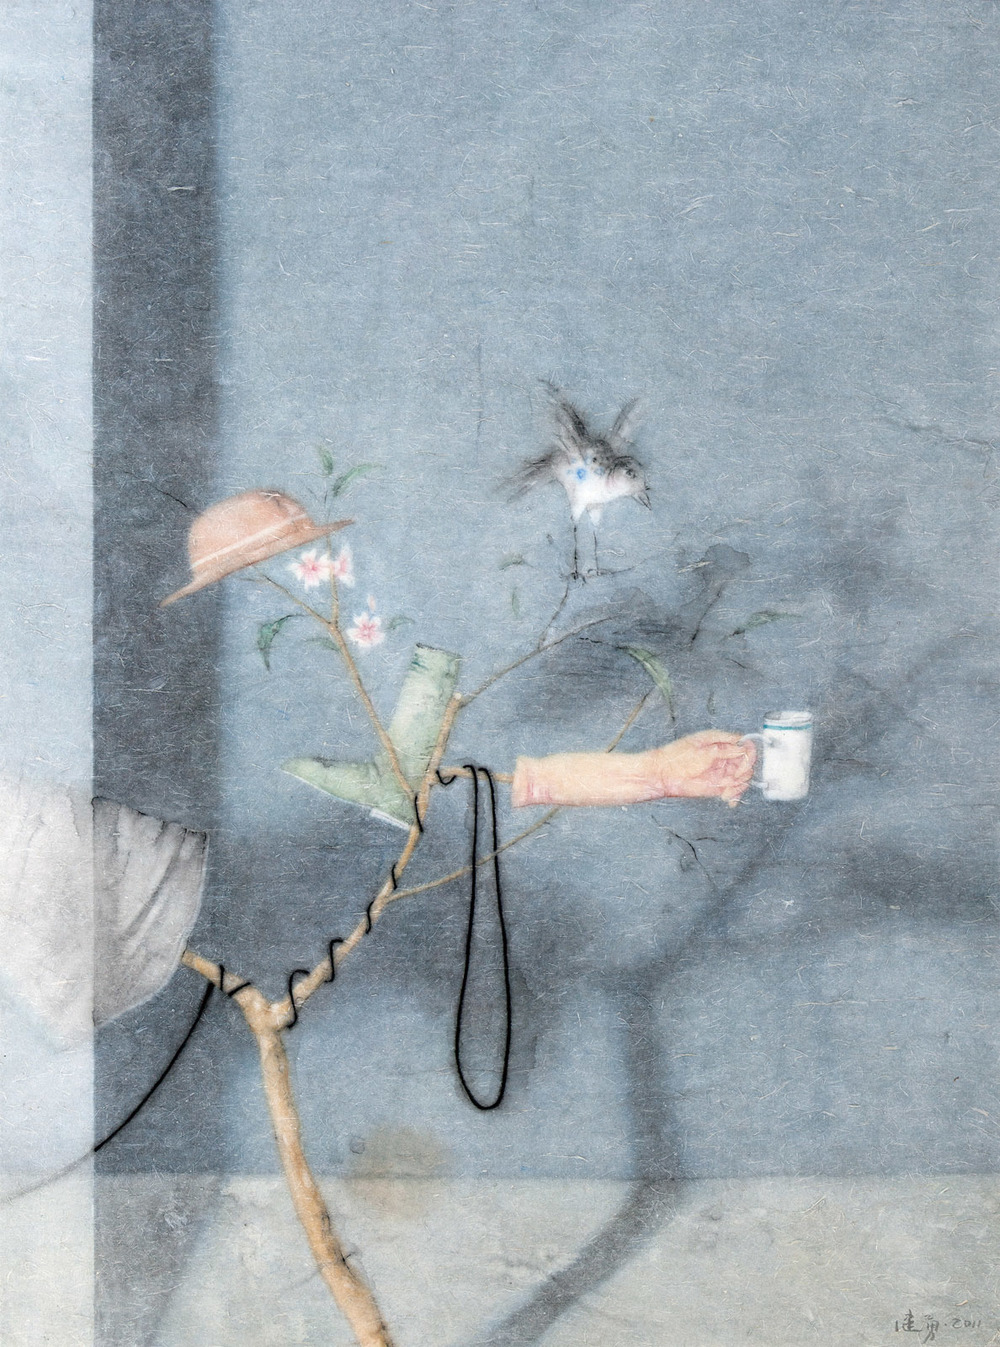 Zeng Jianyong 曾健勇, On The Tree No.1 还上枝头之一, 2012, Ink and color on paper 纸本设色, 128 x 95 cm